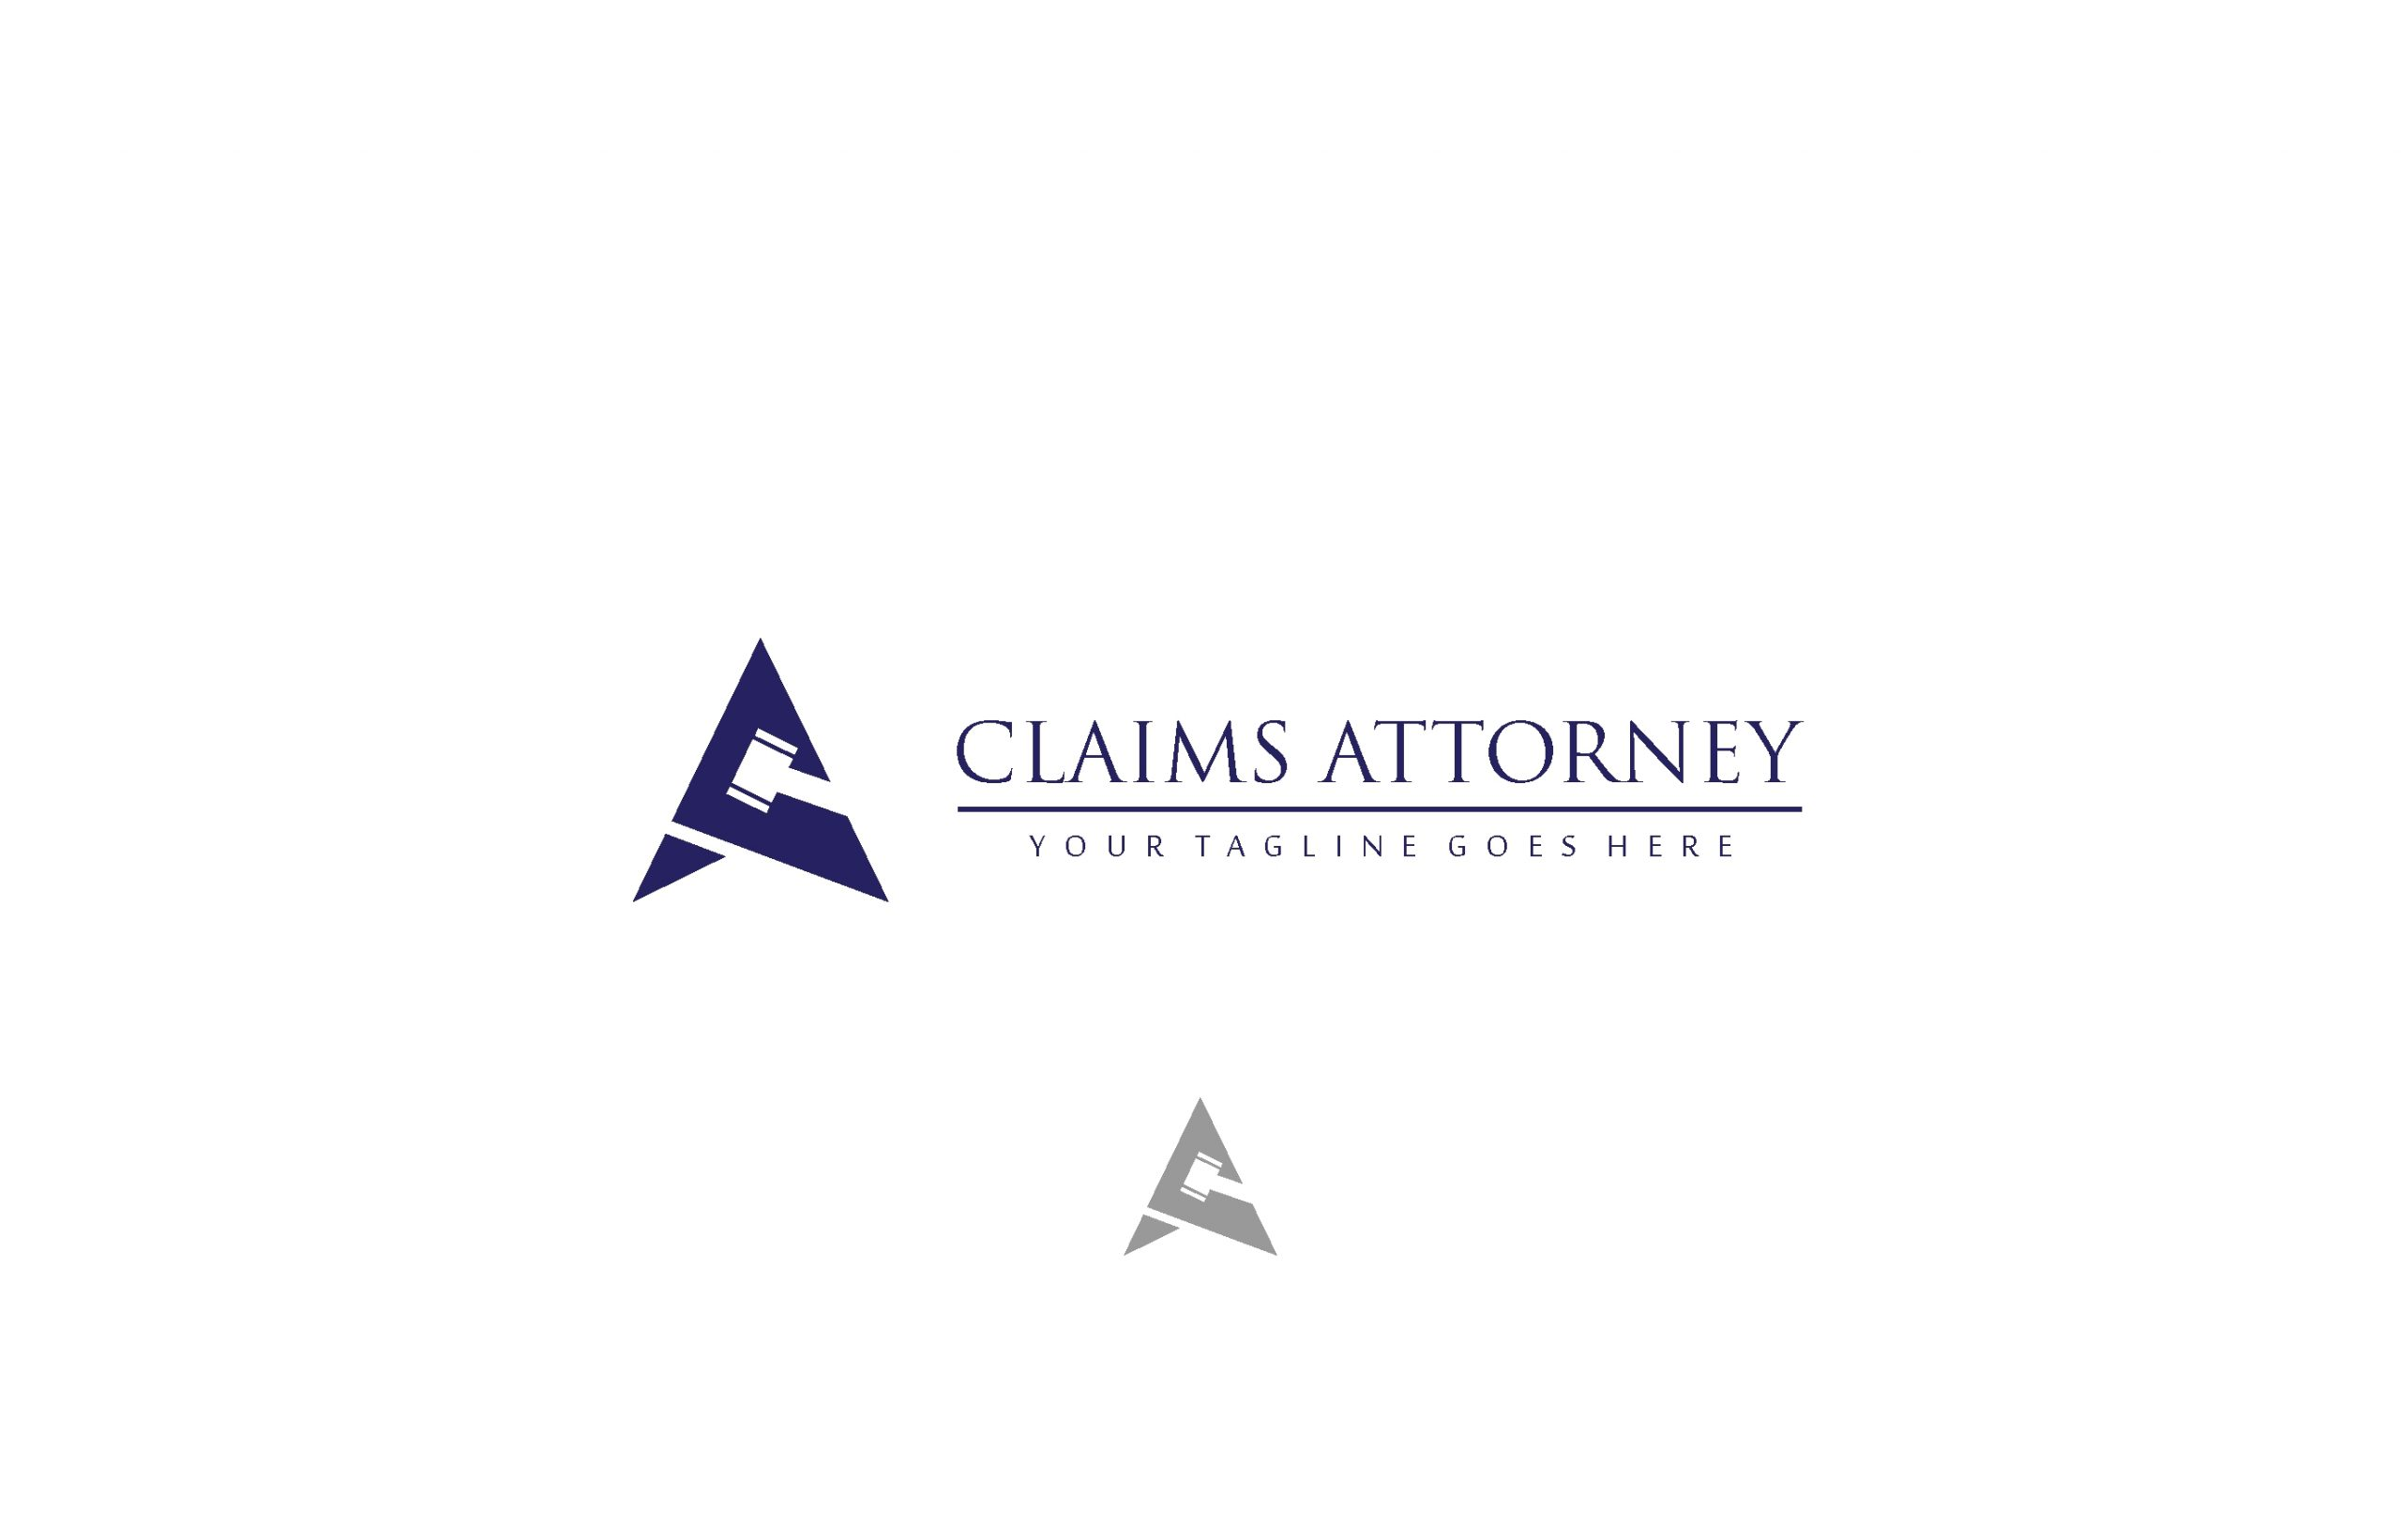 Claims Attorney